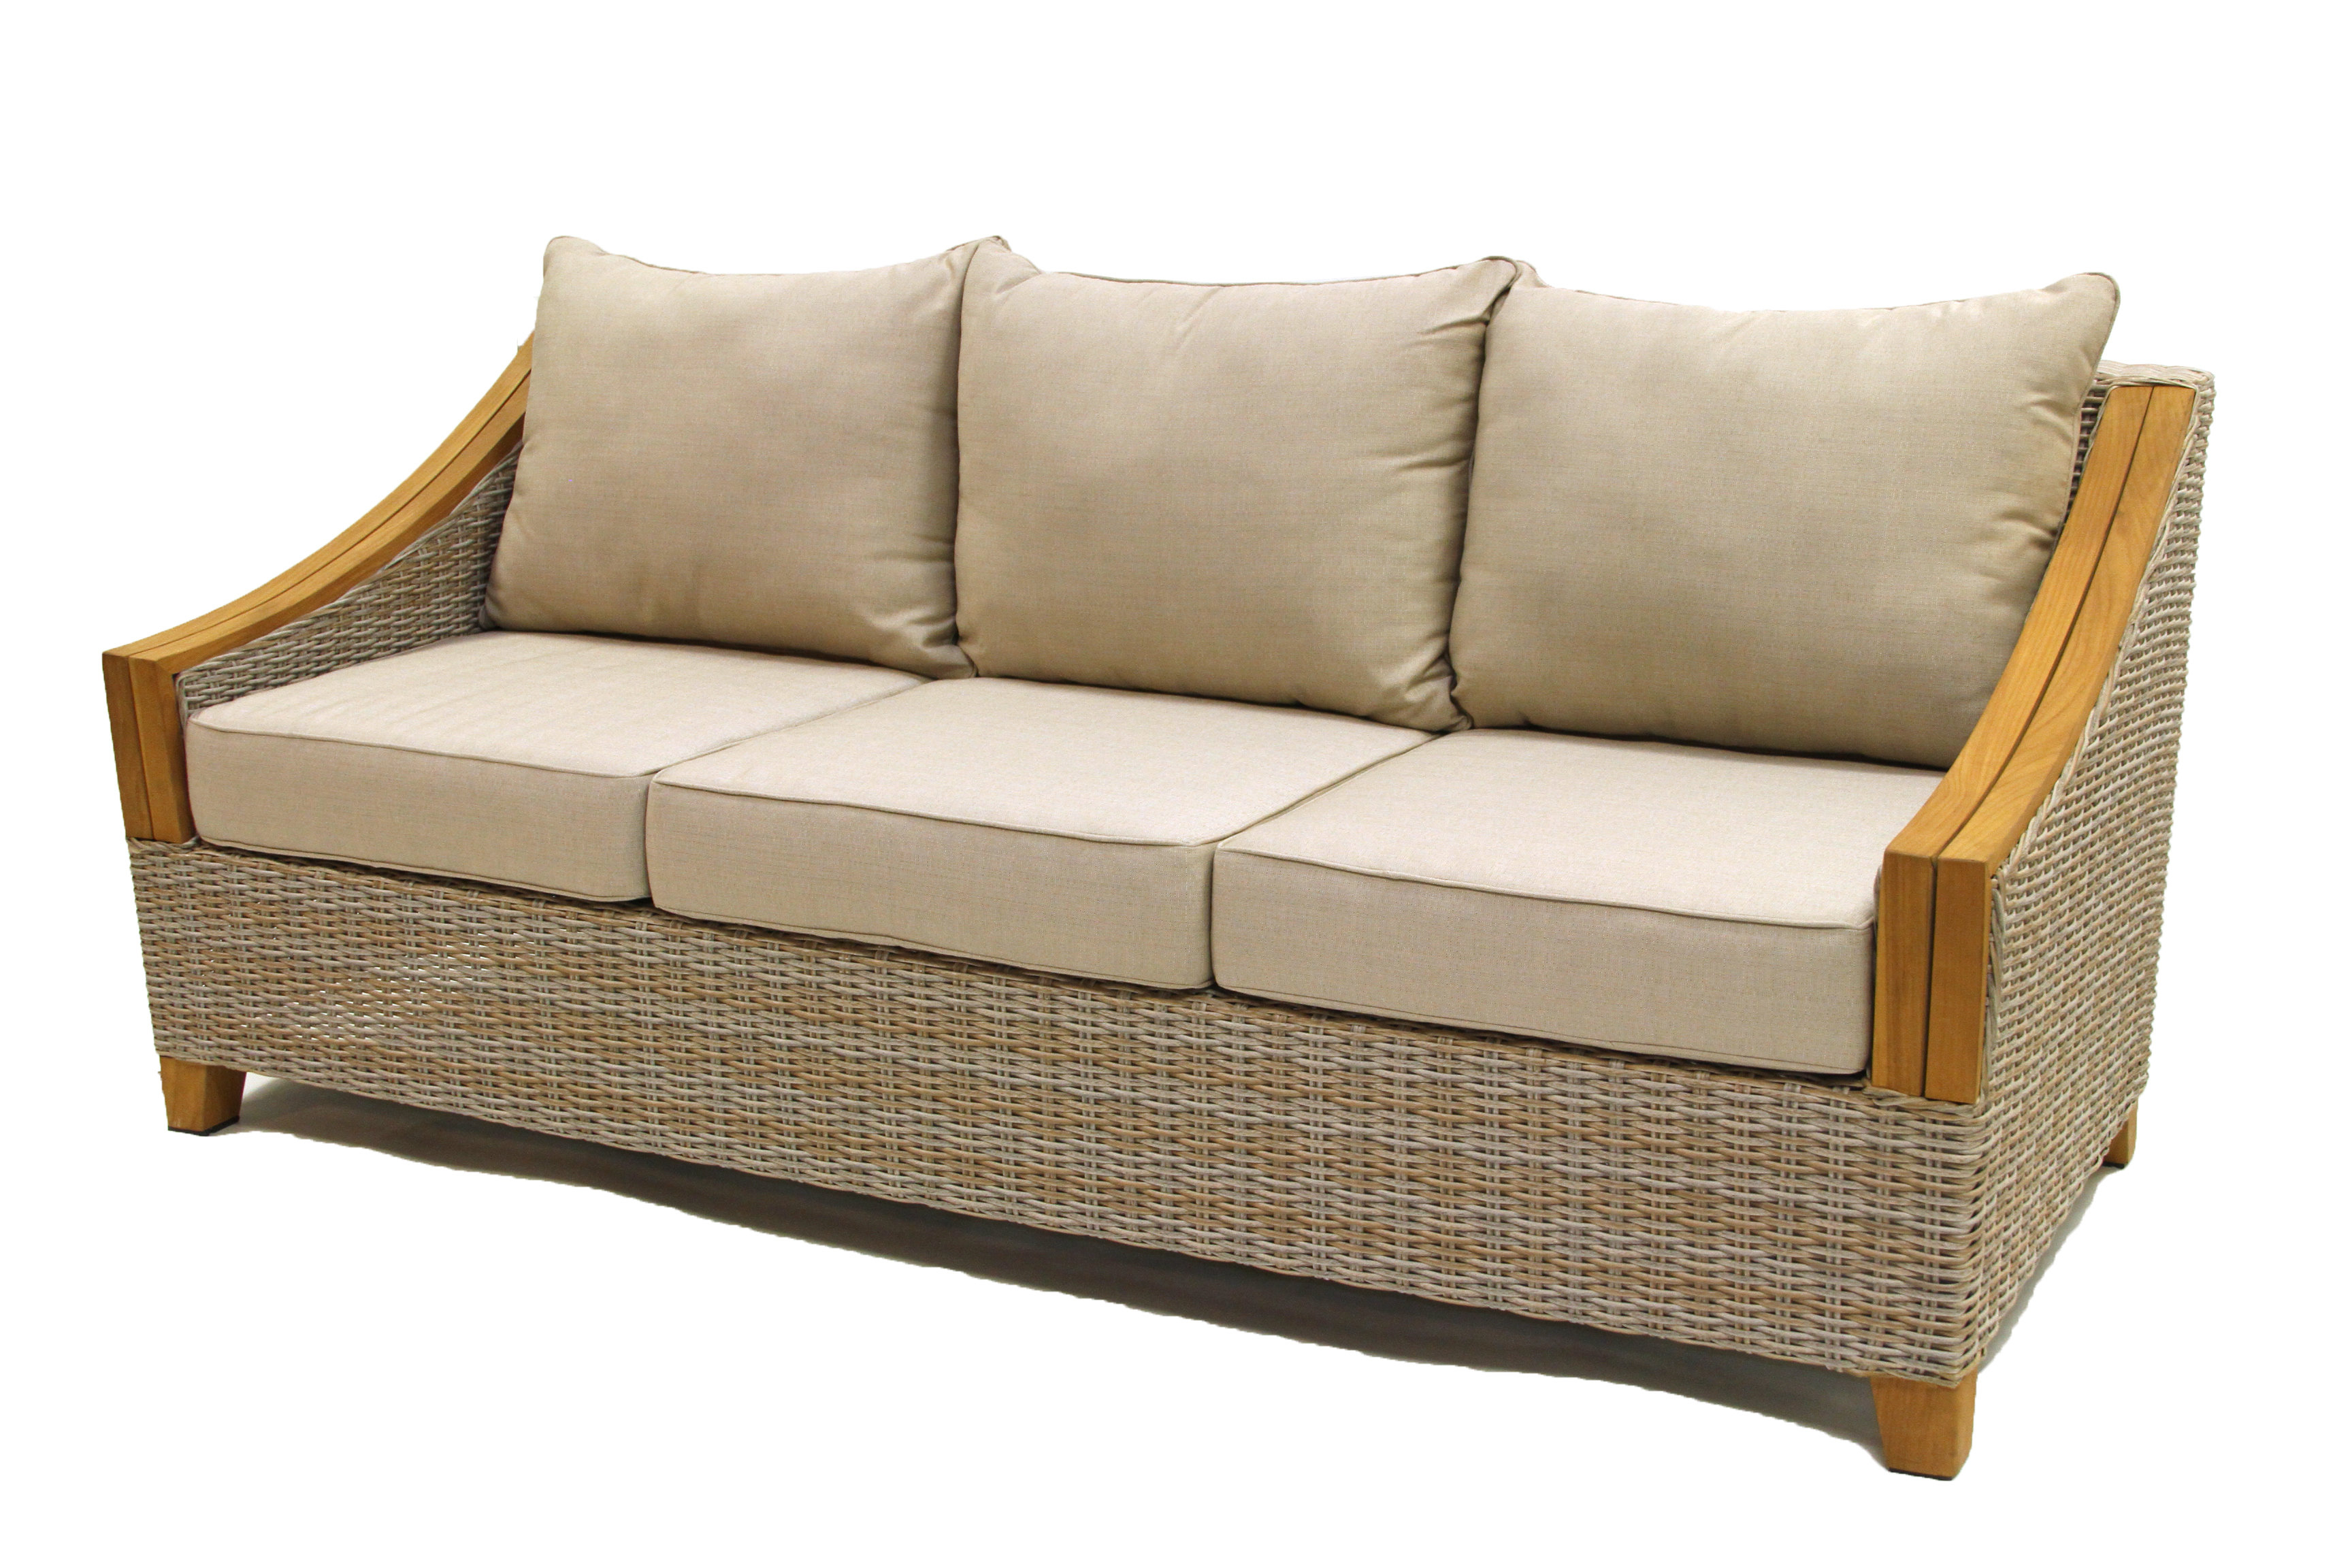 Popular Clary Teak Lounge Patio Daybeds With Cushion Within Farmhouse & Rustic Teak Outdoor Furniture (View 16 of 20)